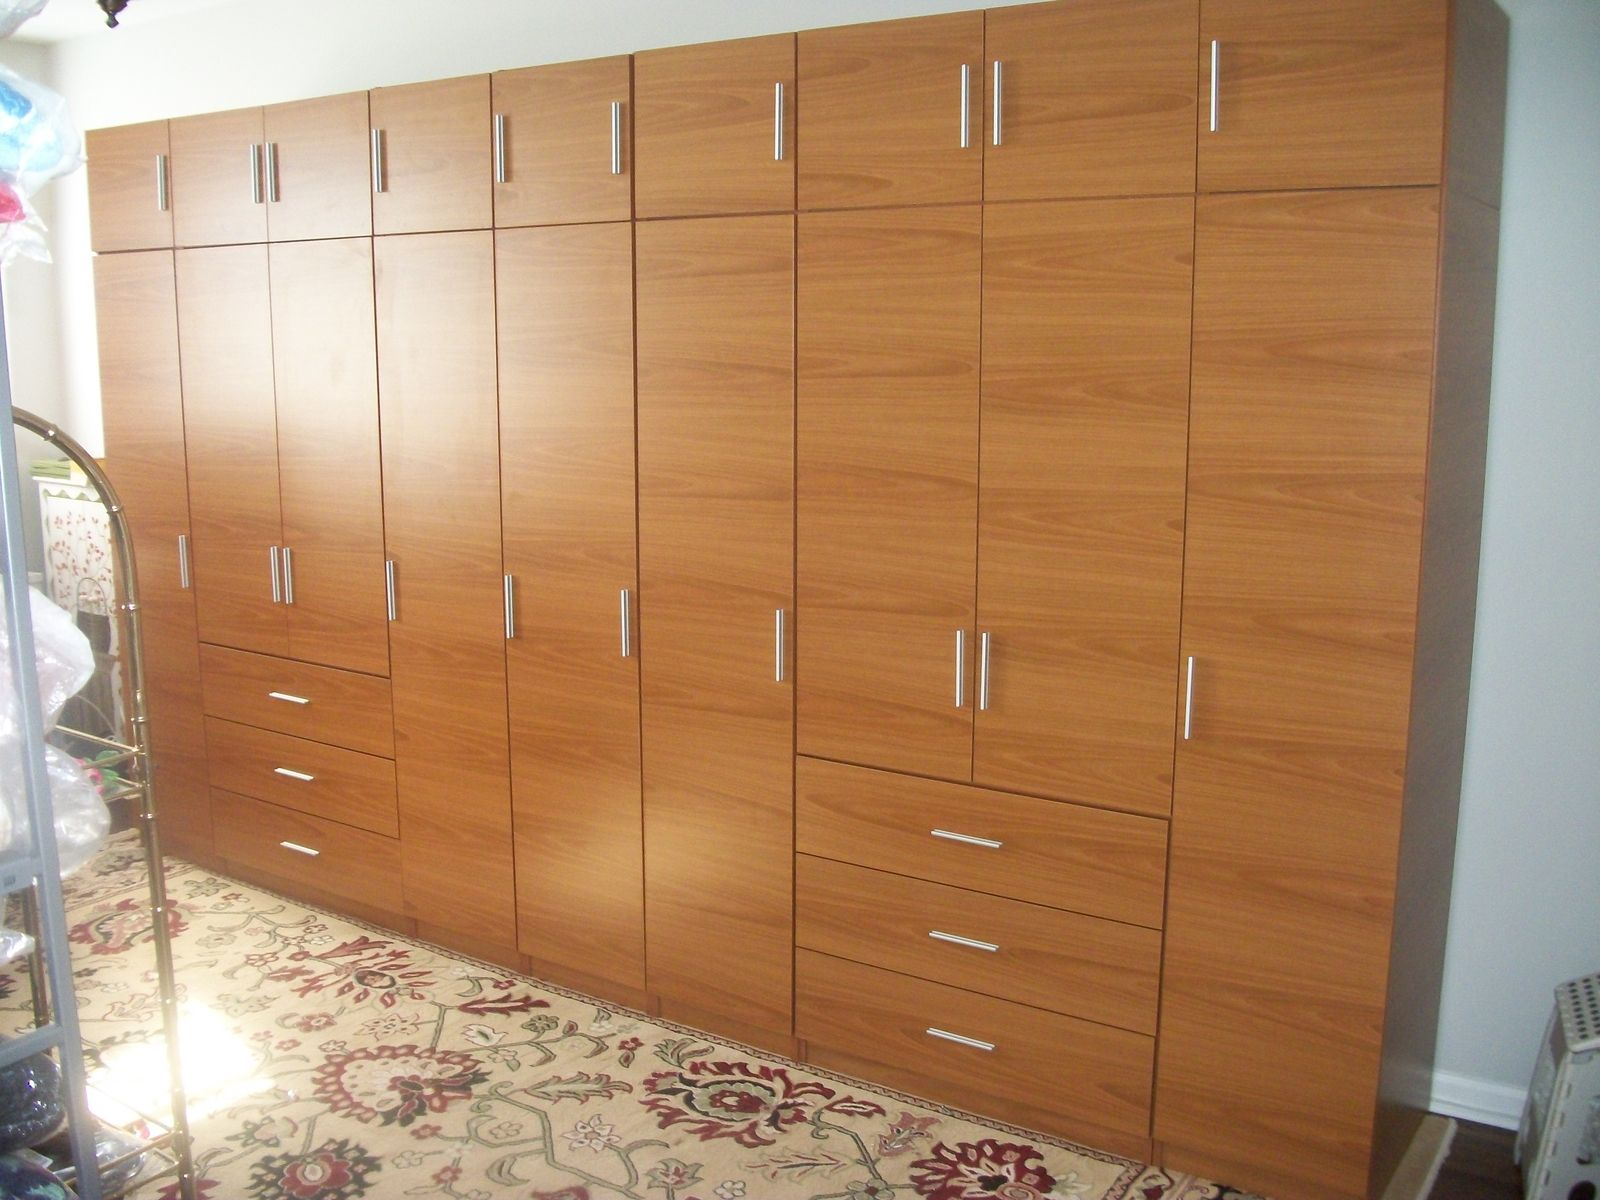 Wall To Wall Wardrobes Handmade Honey Maple Matte Finish Complete Wall Wardrobe